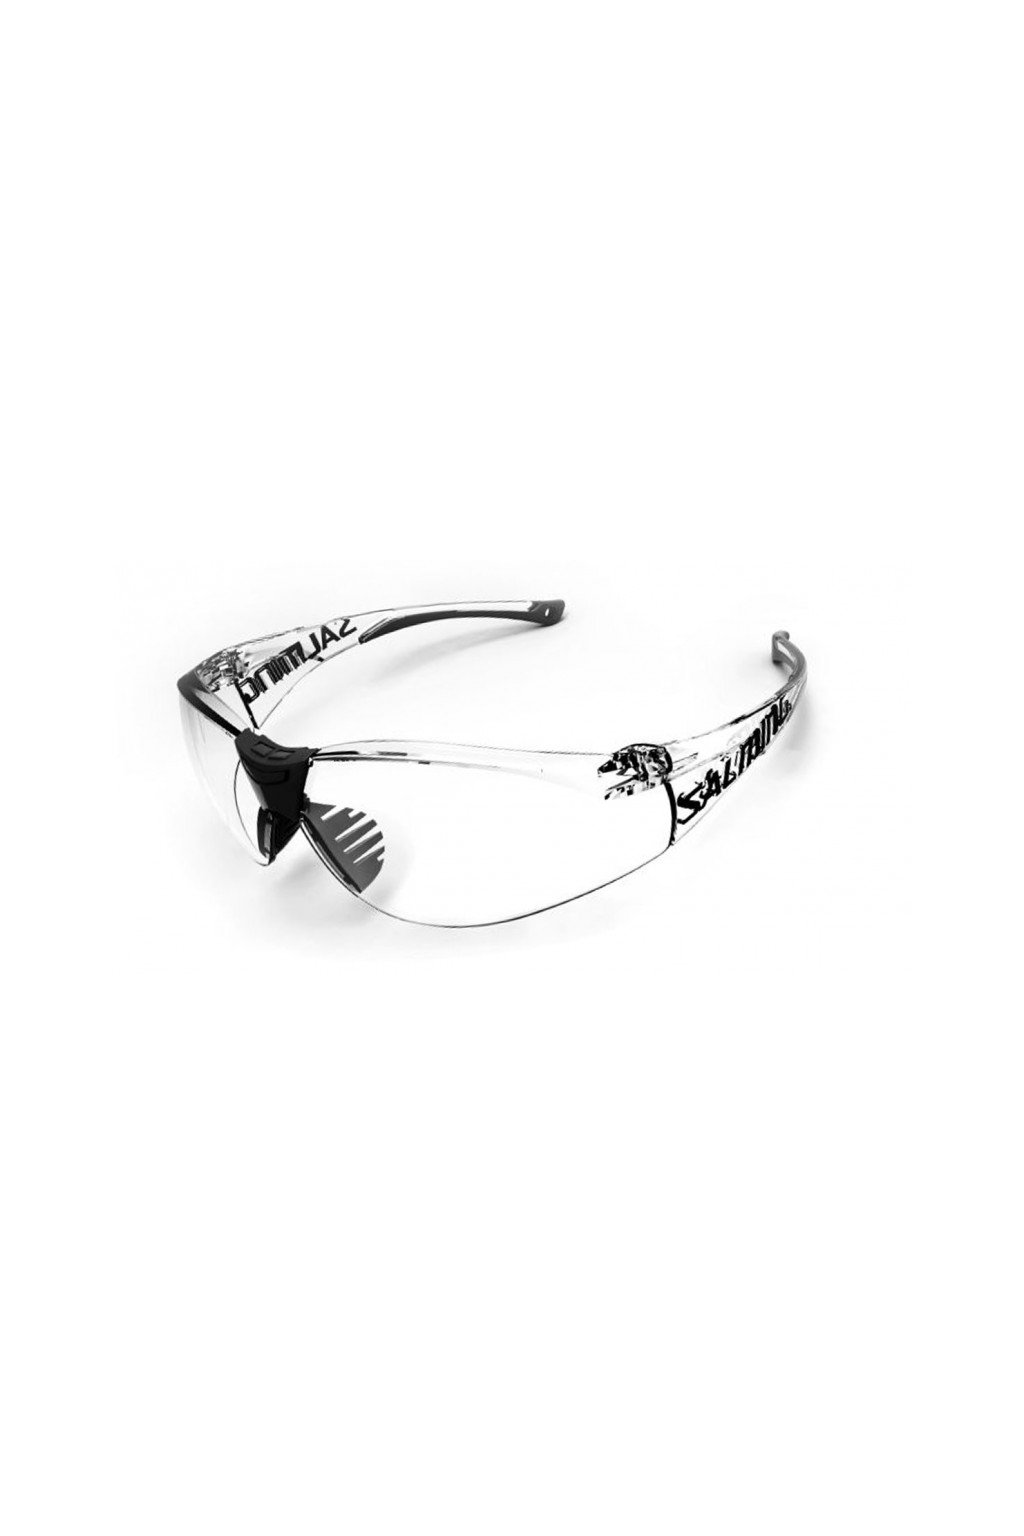 salming split vision eyewear sr black